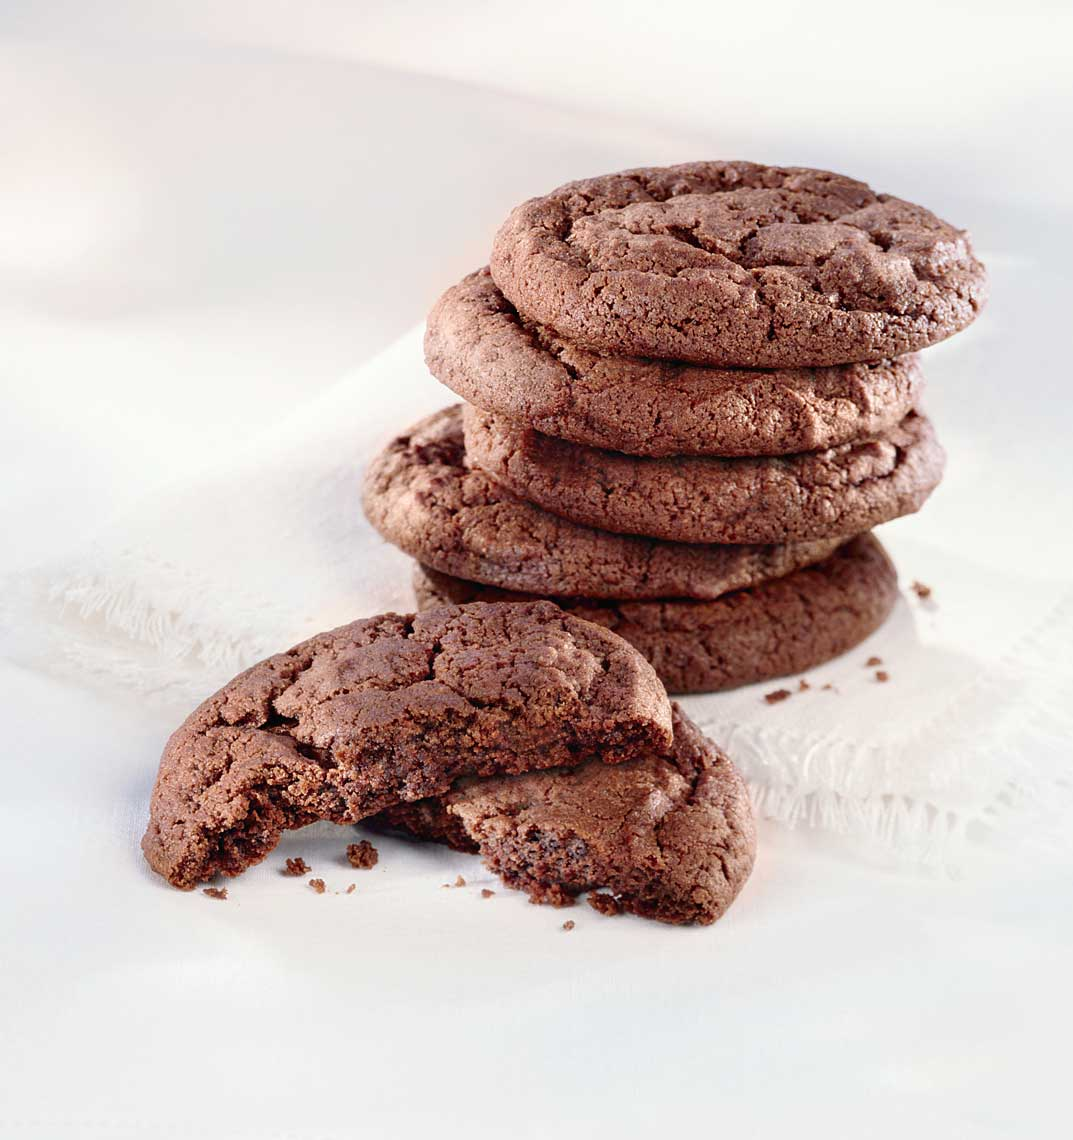 Glasshouse Assignment - David Bishop - Food Photography - Chocolate Cookies